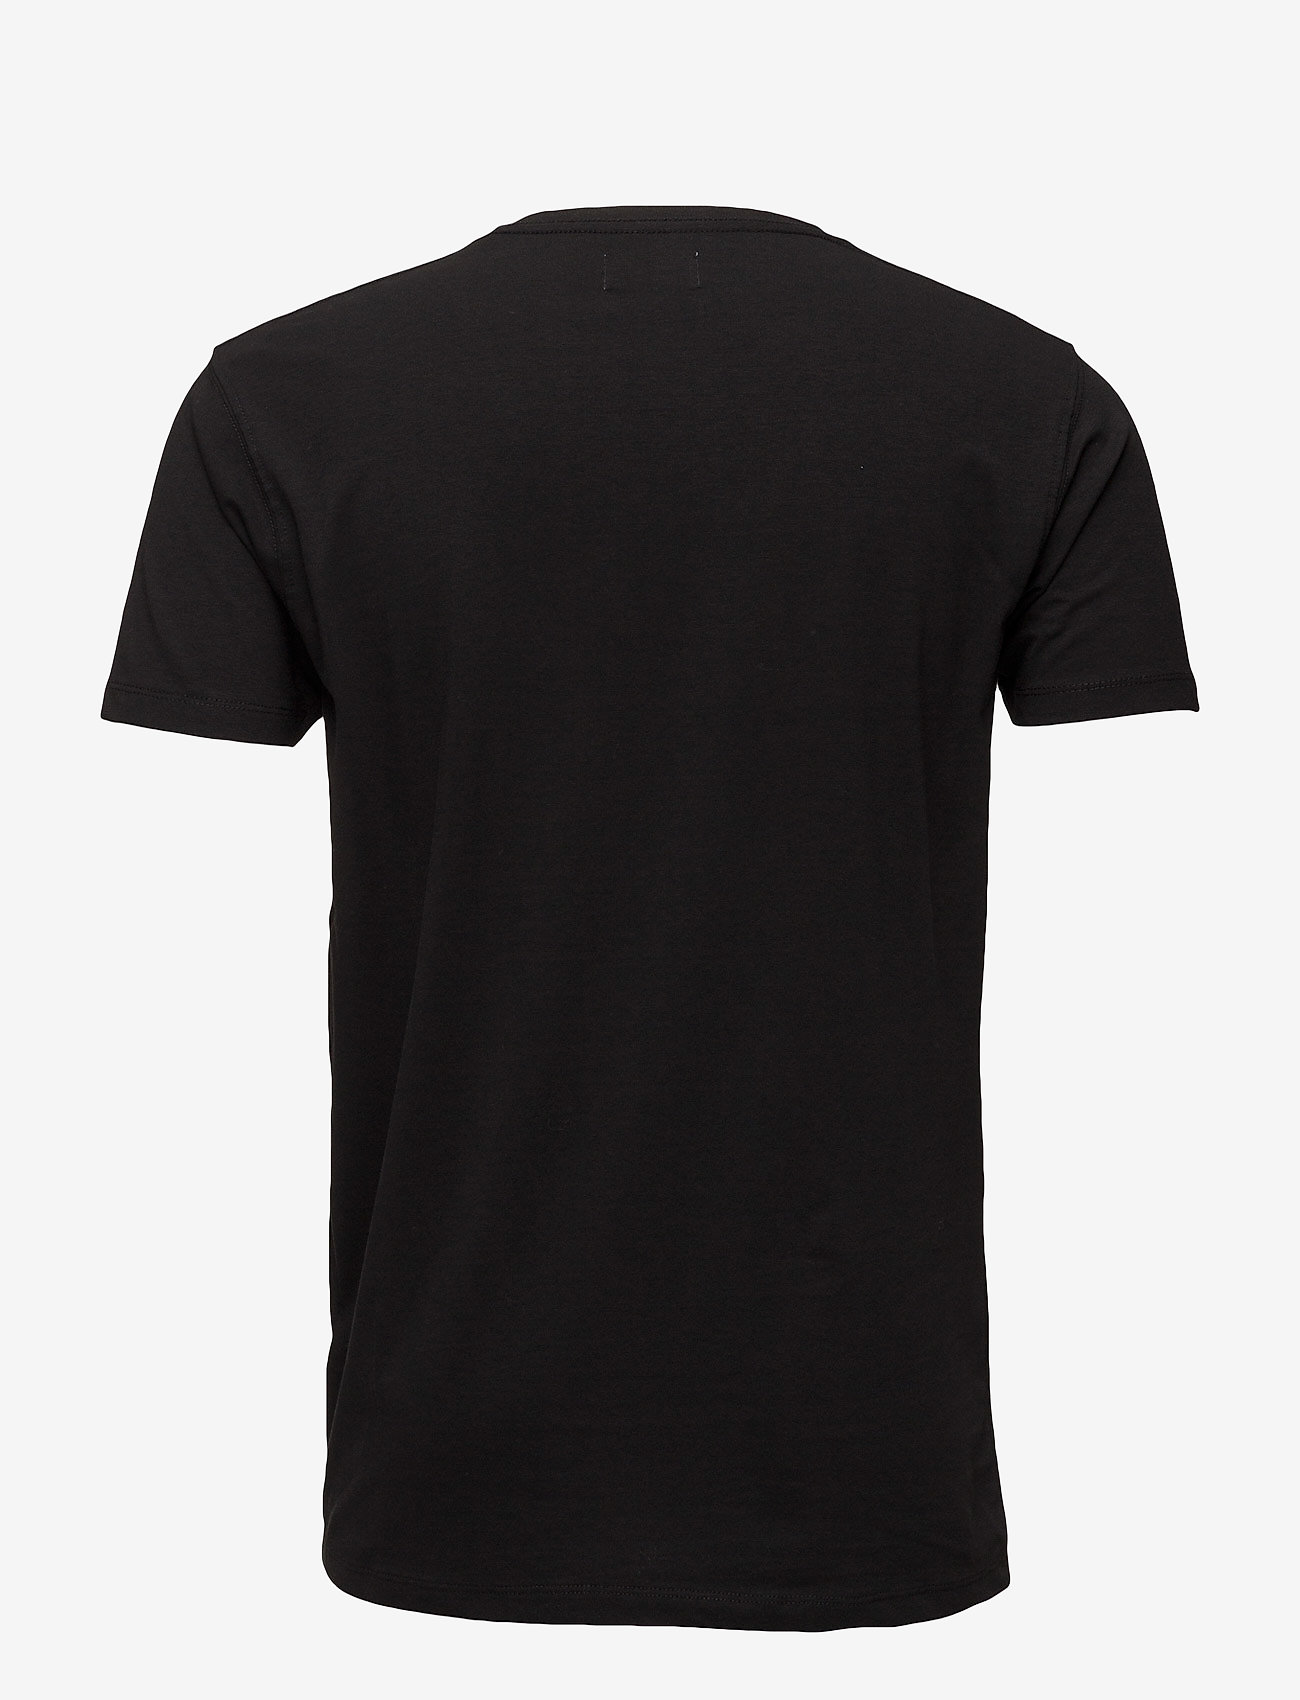 Boozt Merchandise - Mens stretch v-neck tee s/s - short-sleeved t-shirts - black - 1